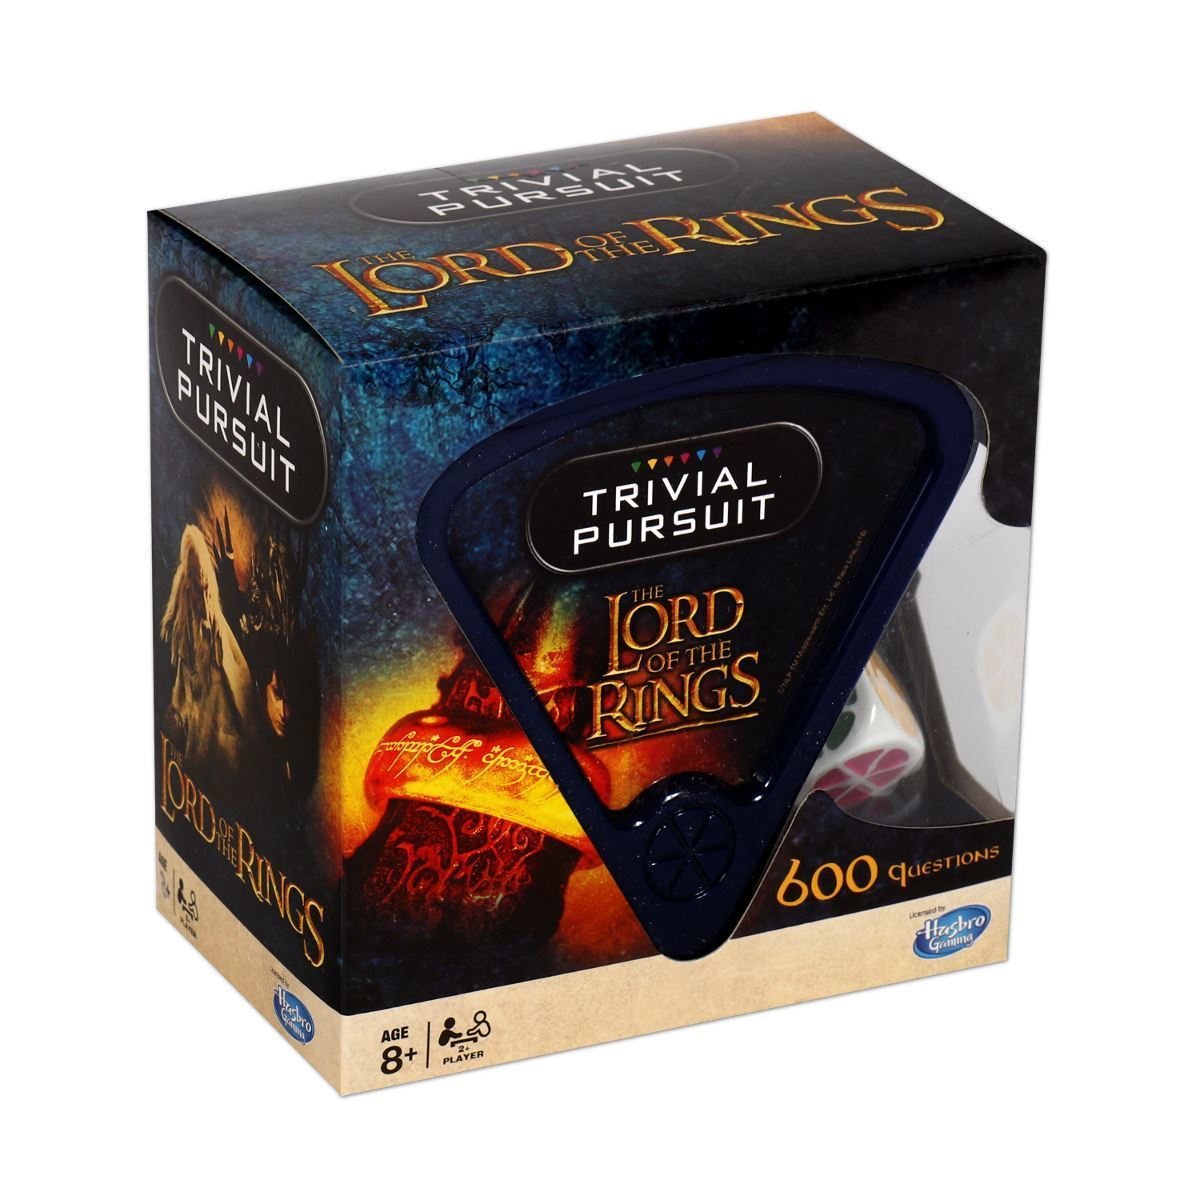 Trivial Pursuit - Lord of the Rings Edition image